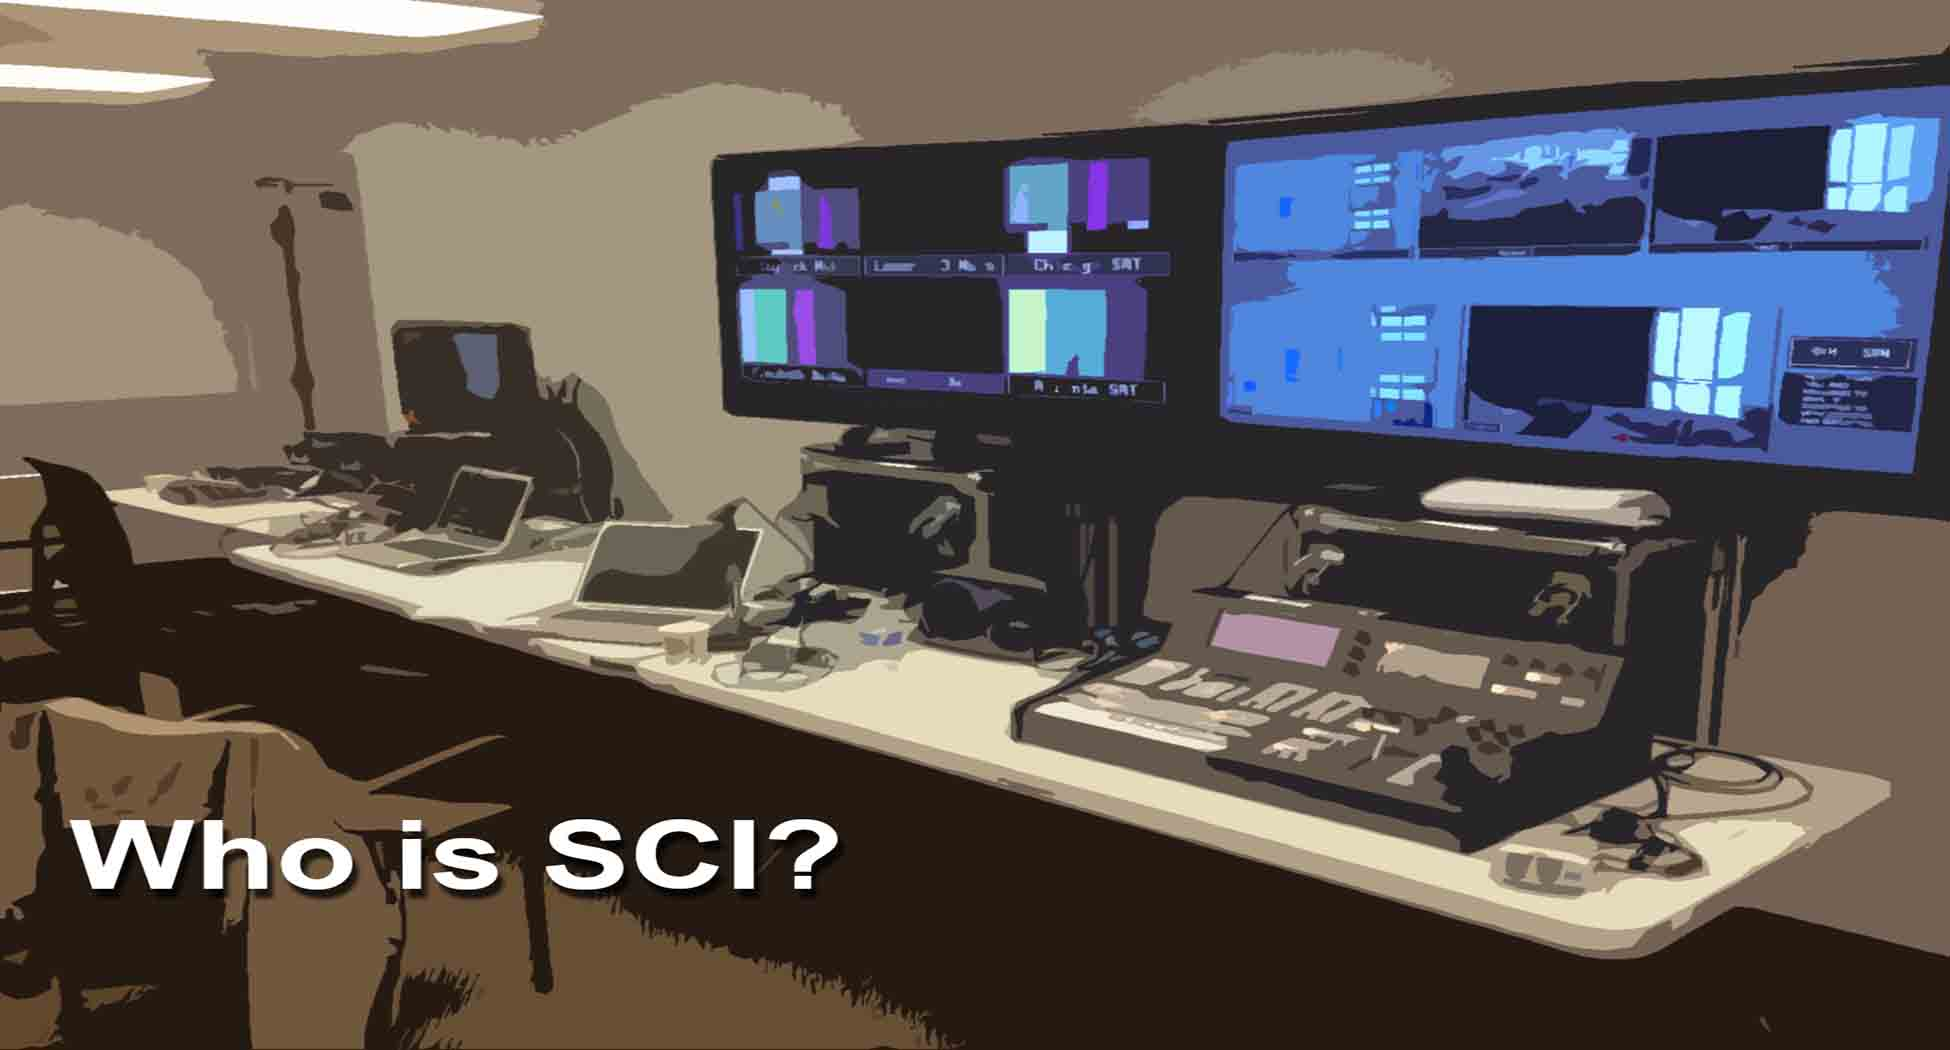 Who is SCI?